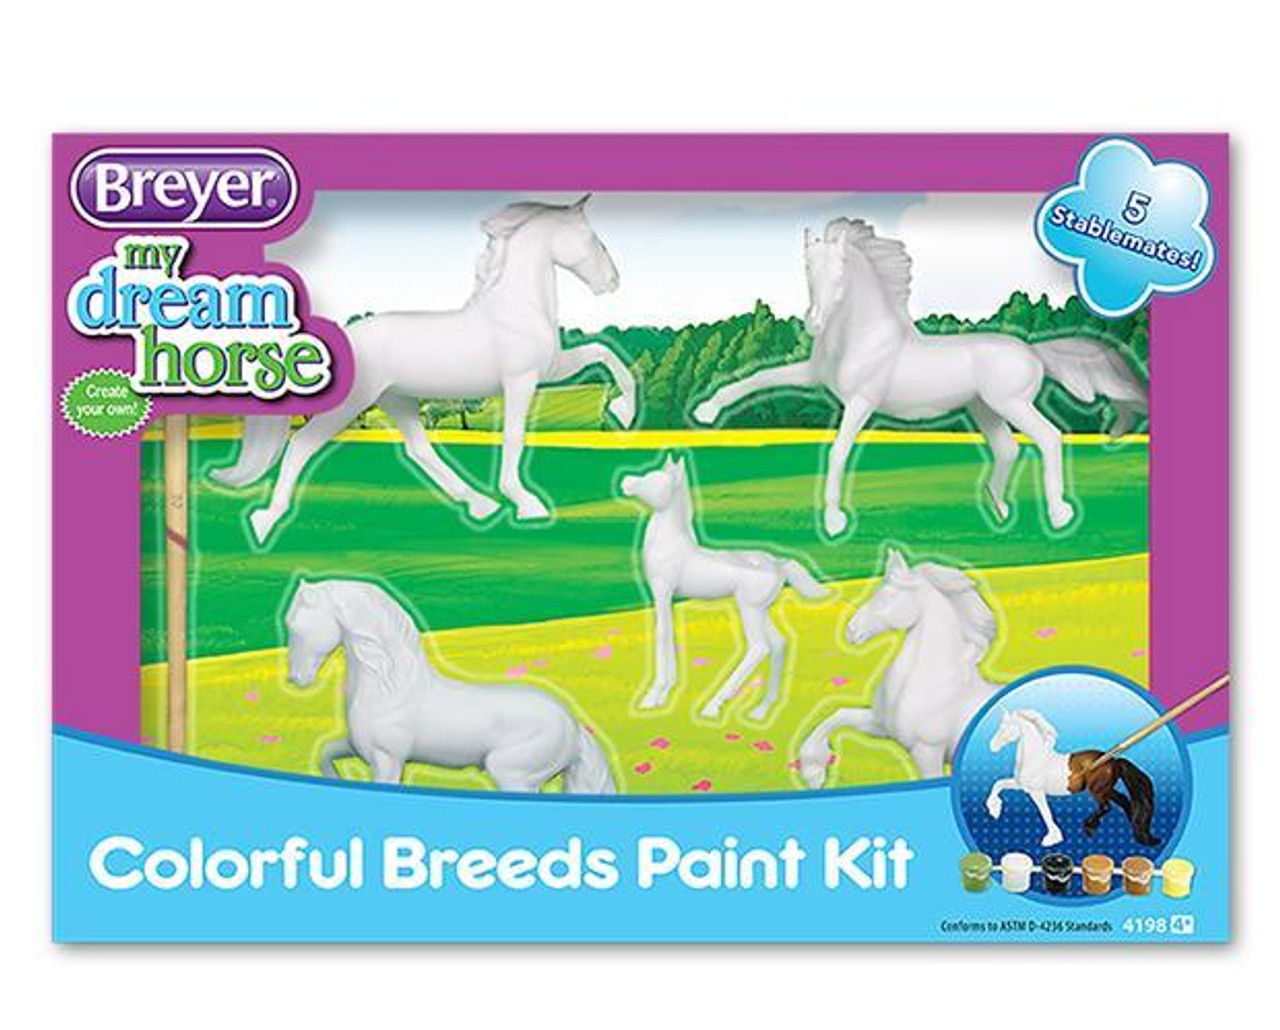 Breyer Stablemate My Dream Horse Colorful Breeds Paint Kit Pilot Point Feed Store